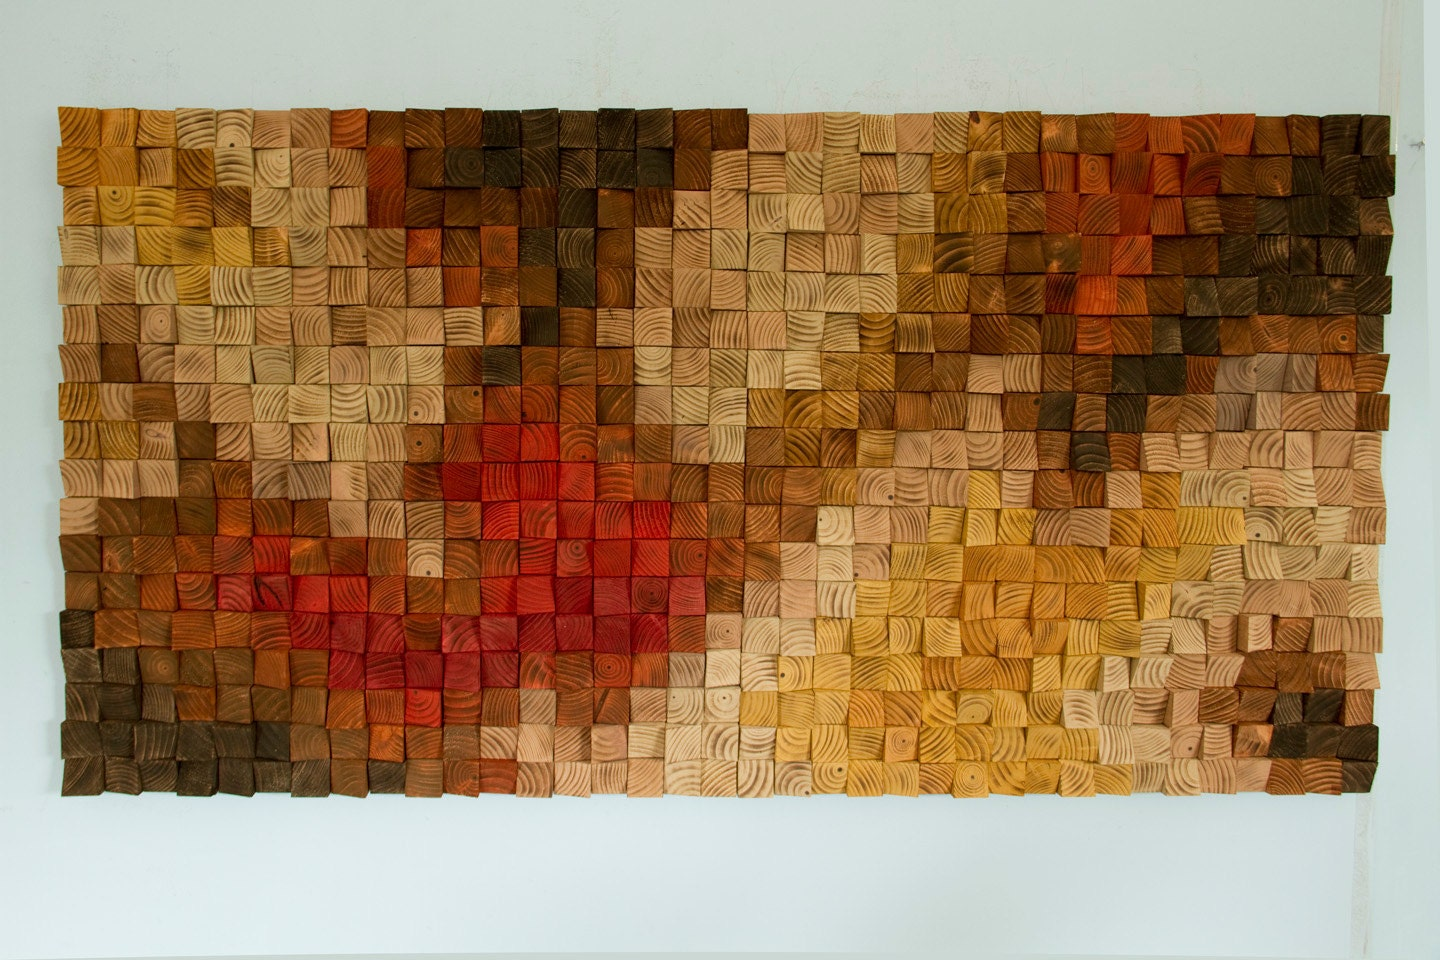 Large Wood Wall Art Part - 37: Large Rustic Wood Wall Art, Wood Wall Sculpture, Abstract Painting On Wood